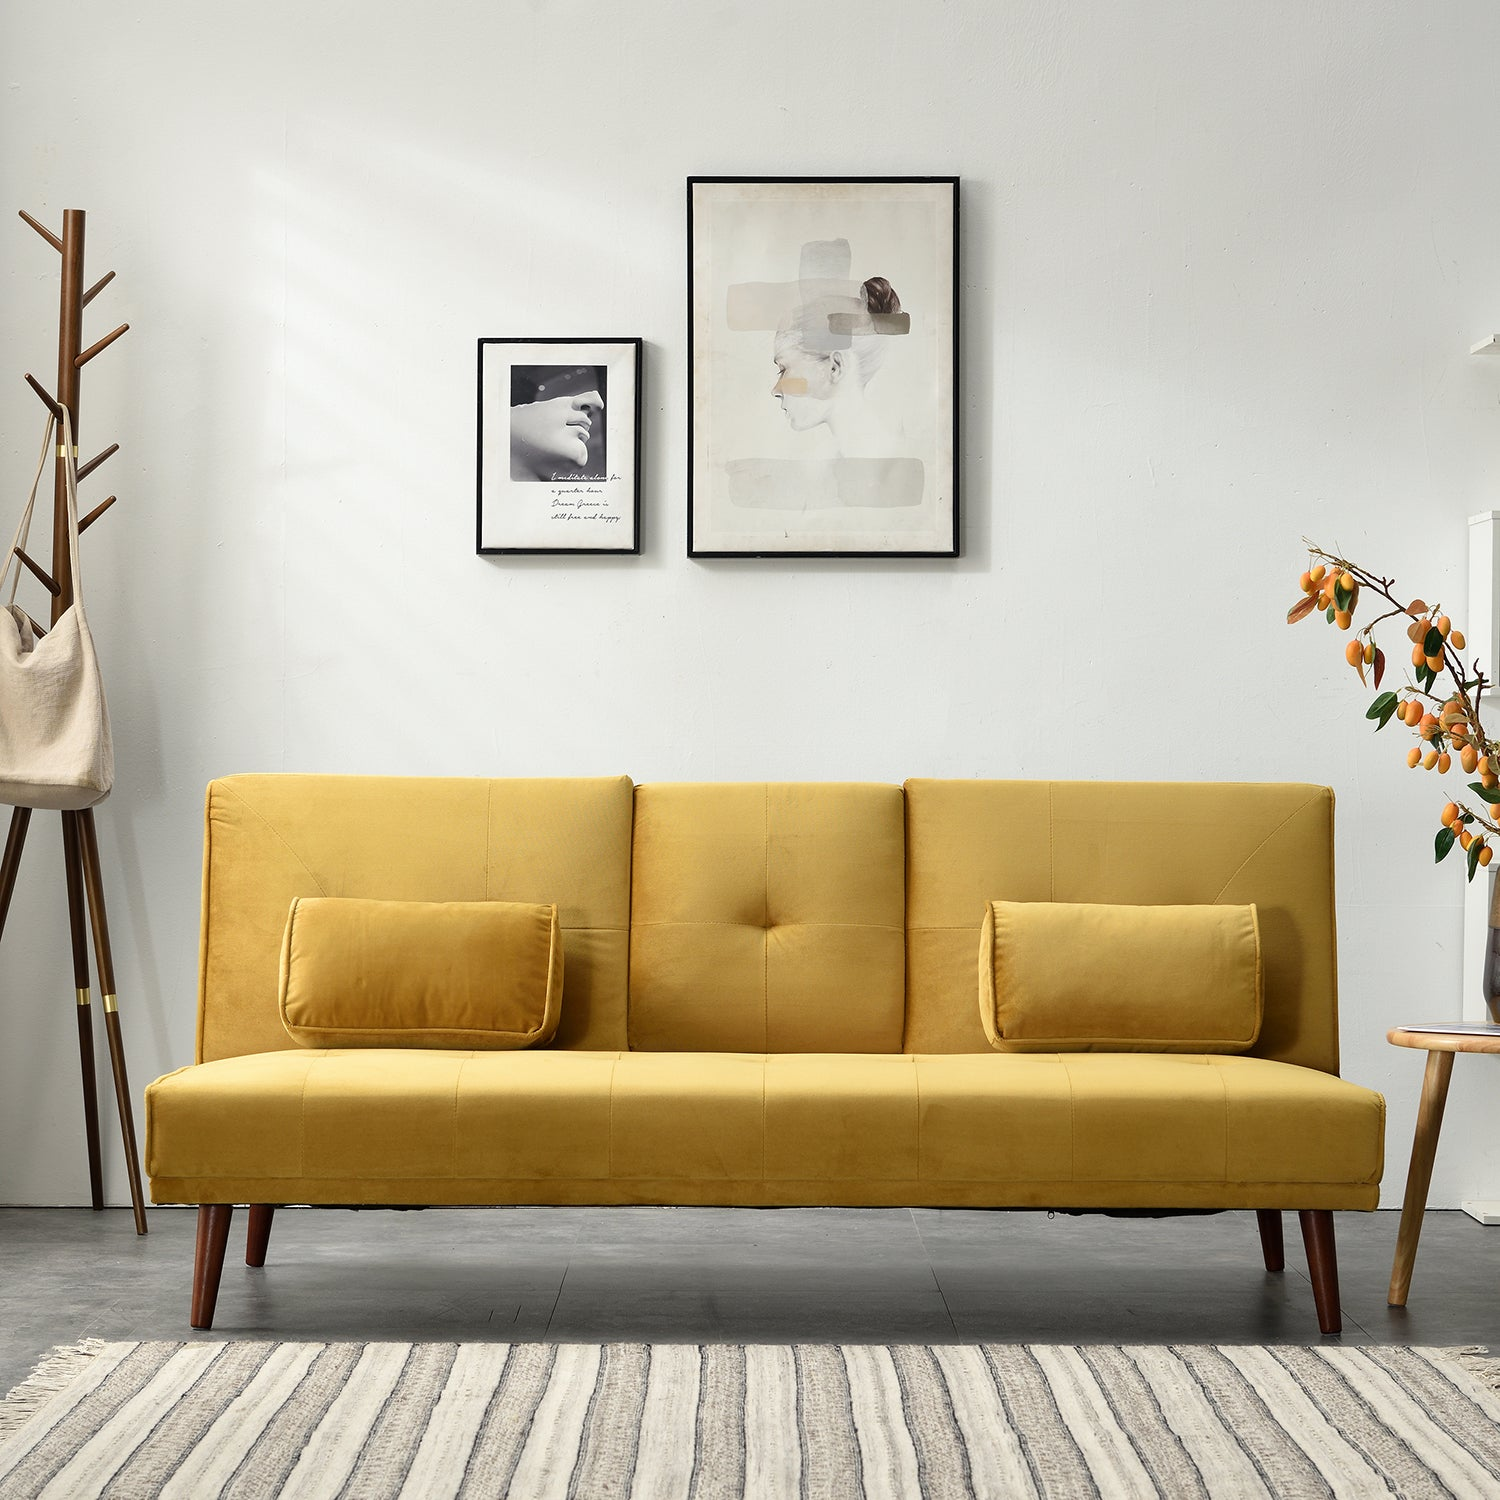 Acrux 3 Seater Sofa Bed in Mustard Velvet 1